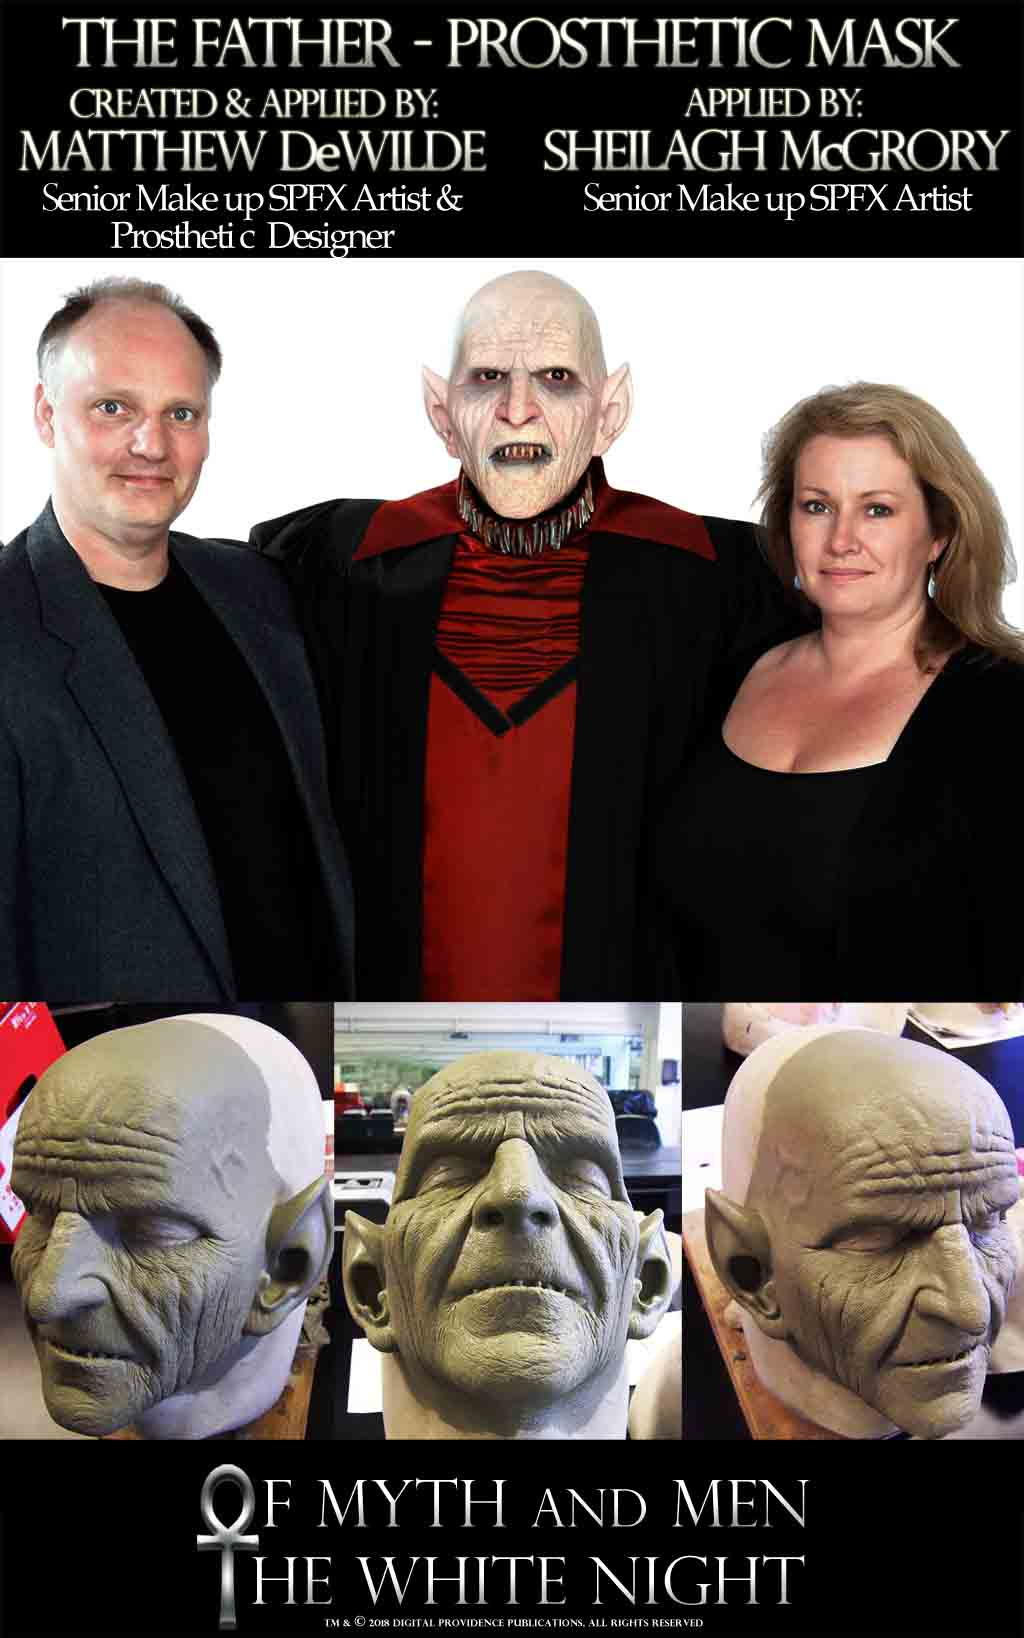 The Father of the Nosferatu prosthetic mask by SFX makeup artist Matthew DeWilde